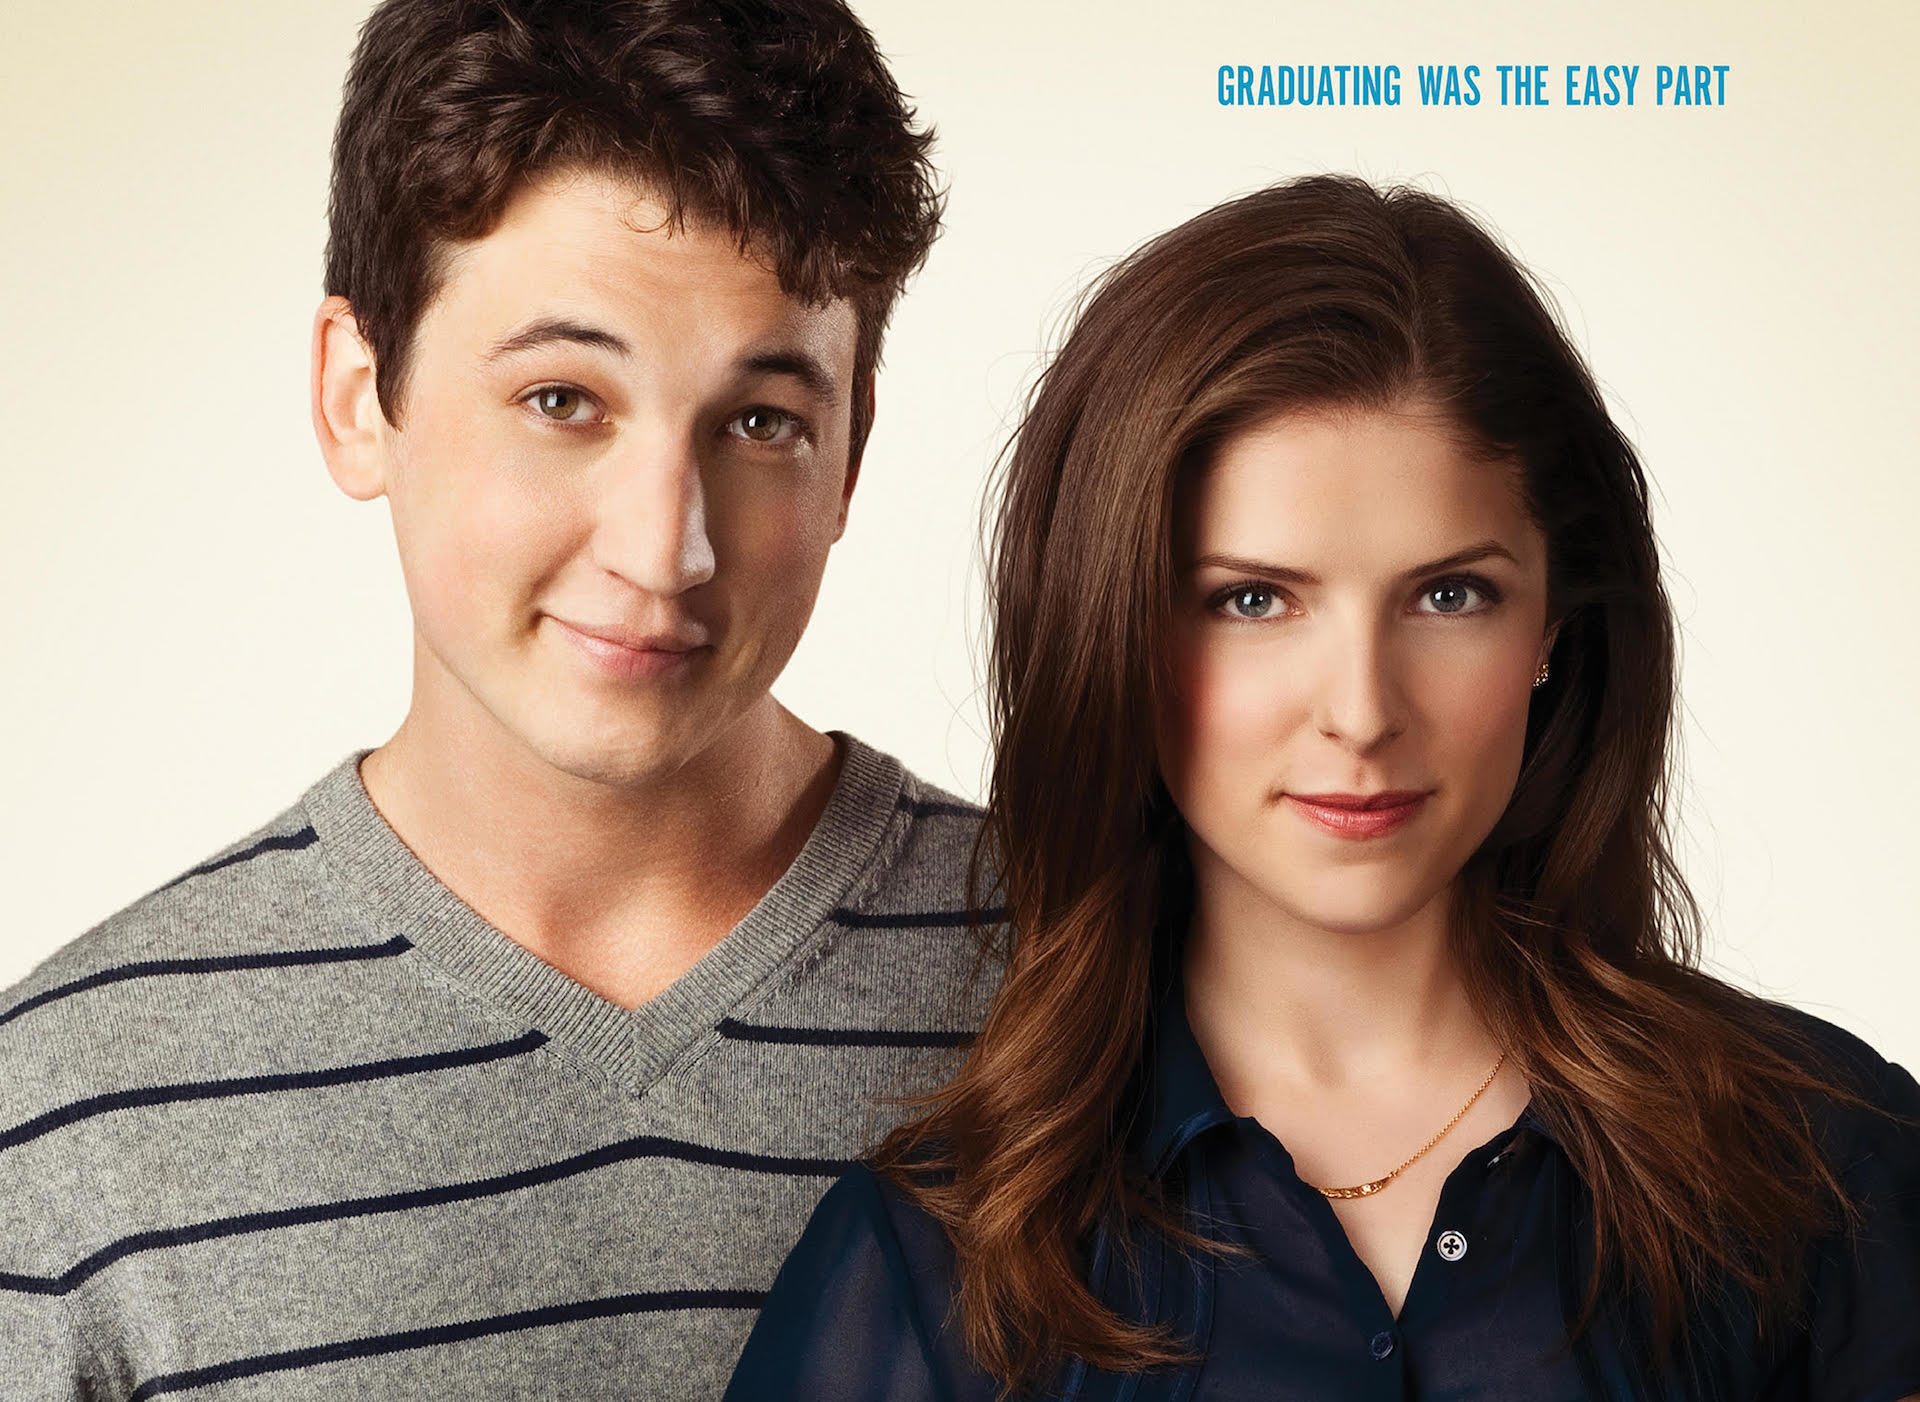 exclusive-clip-get-a-job-starring-anna-kendrick-and-miles-teller-video